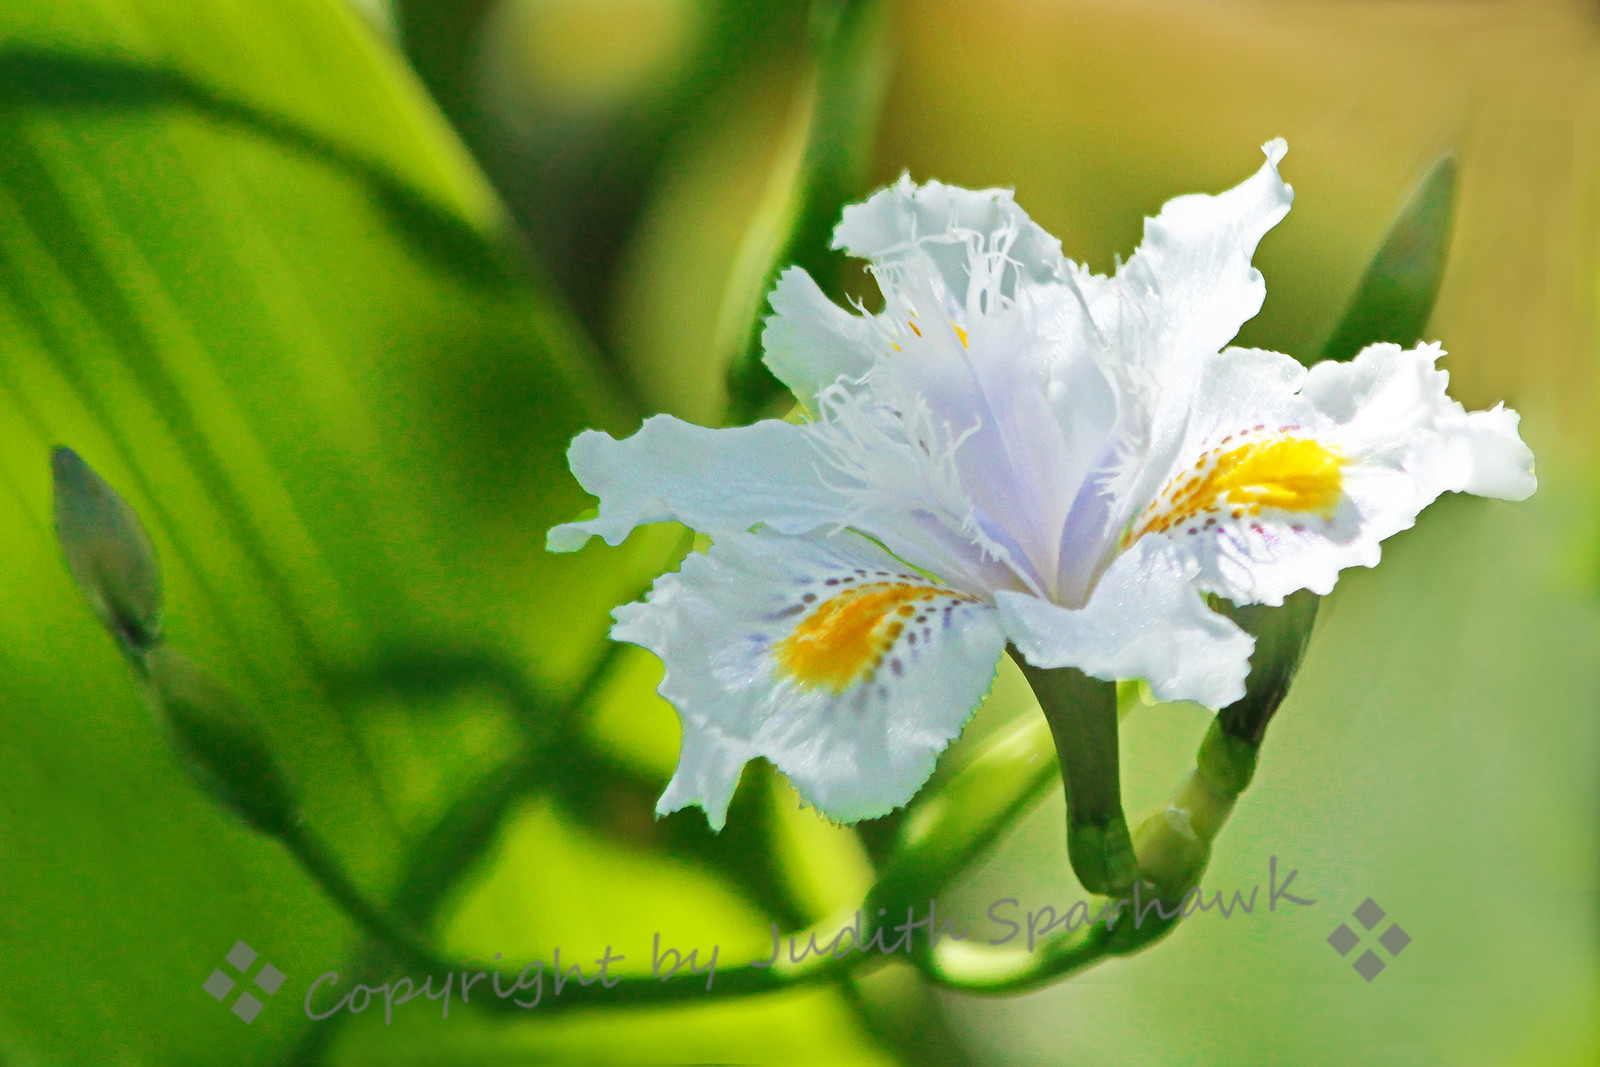 White Iris ~ This beautiful lacy variety of iris was beautiful in the morning sun.